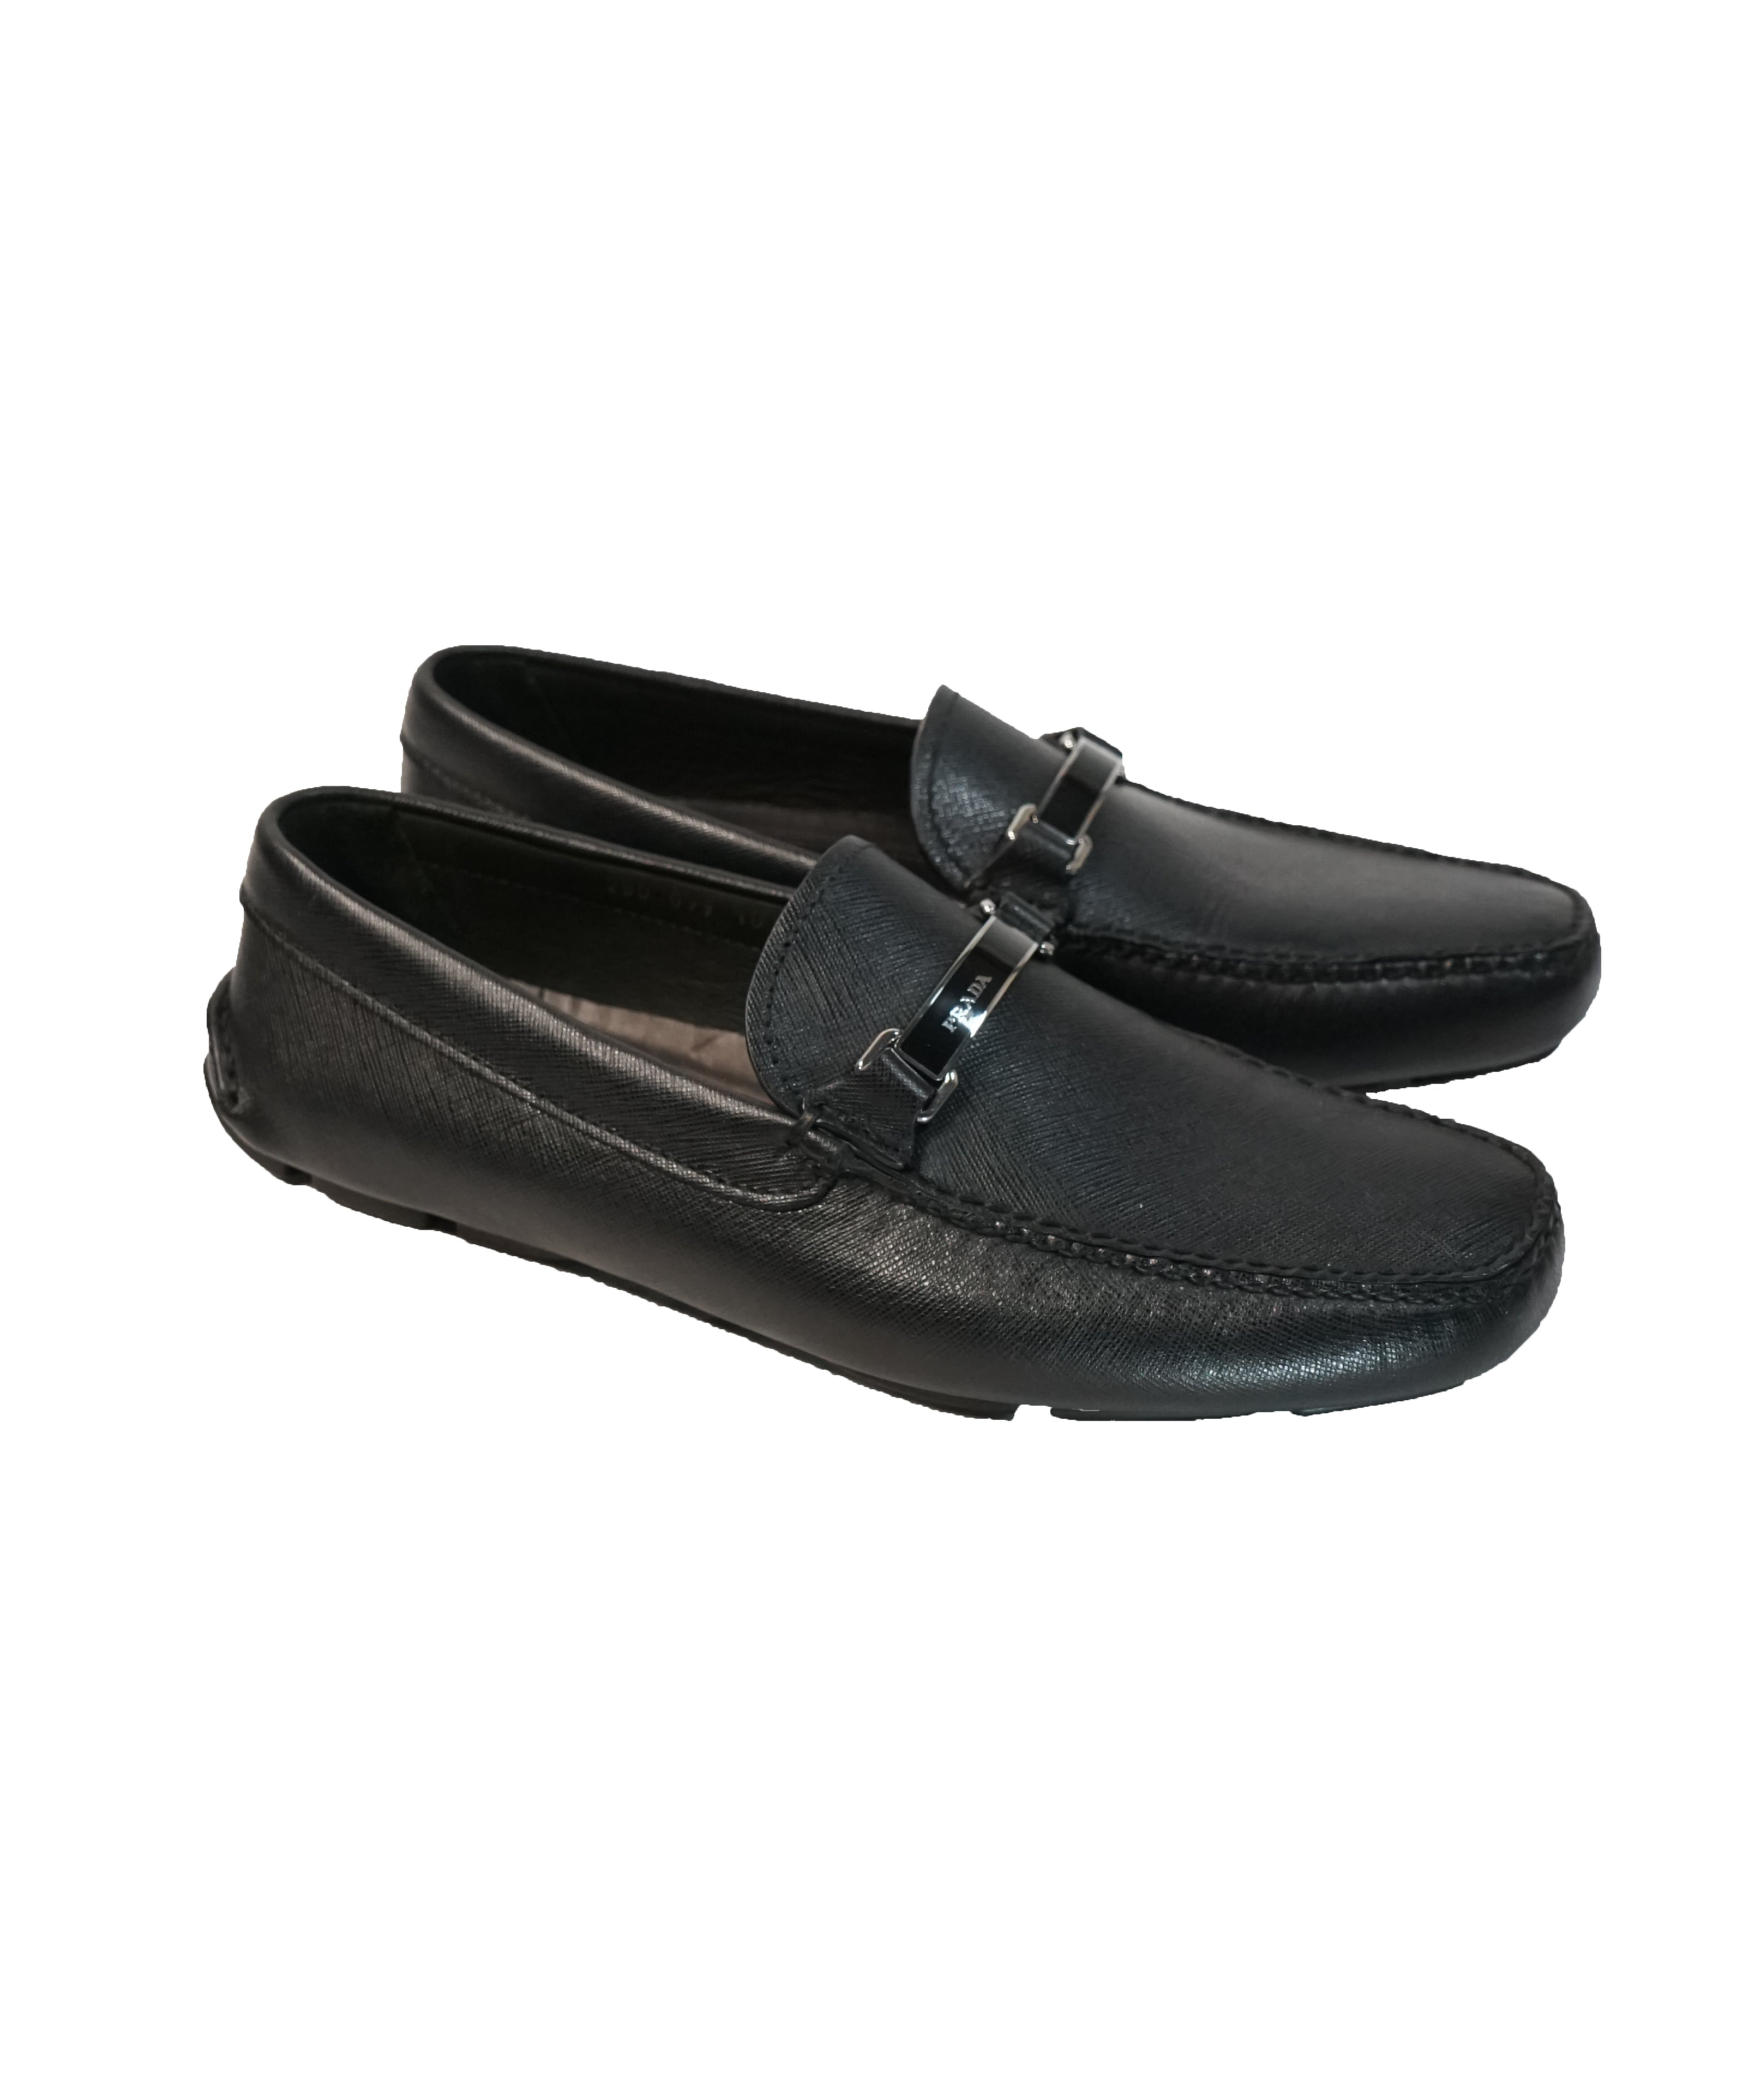 PRADA - Black Logo Bit Driving Loafers - 11